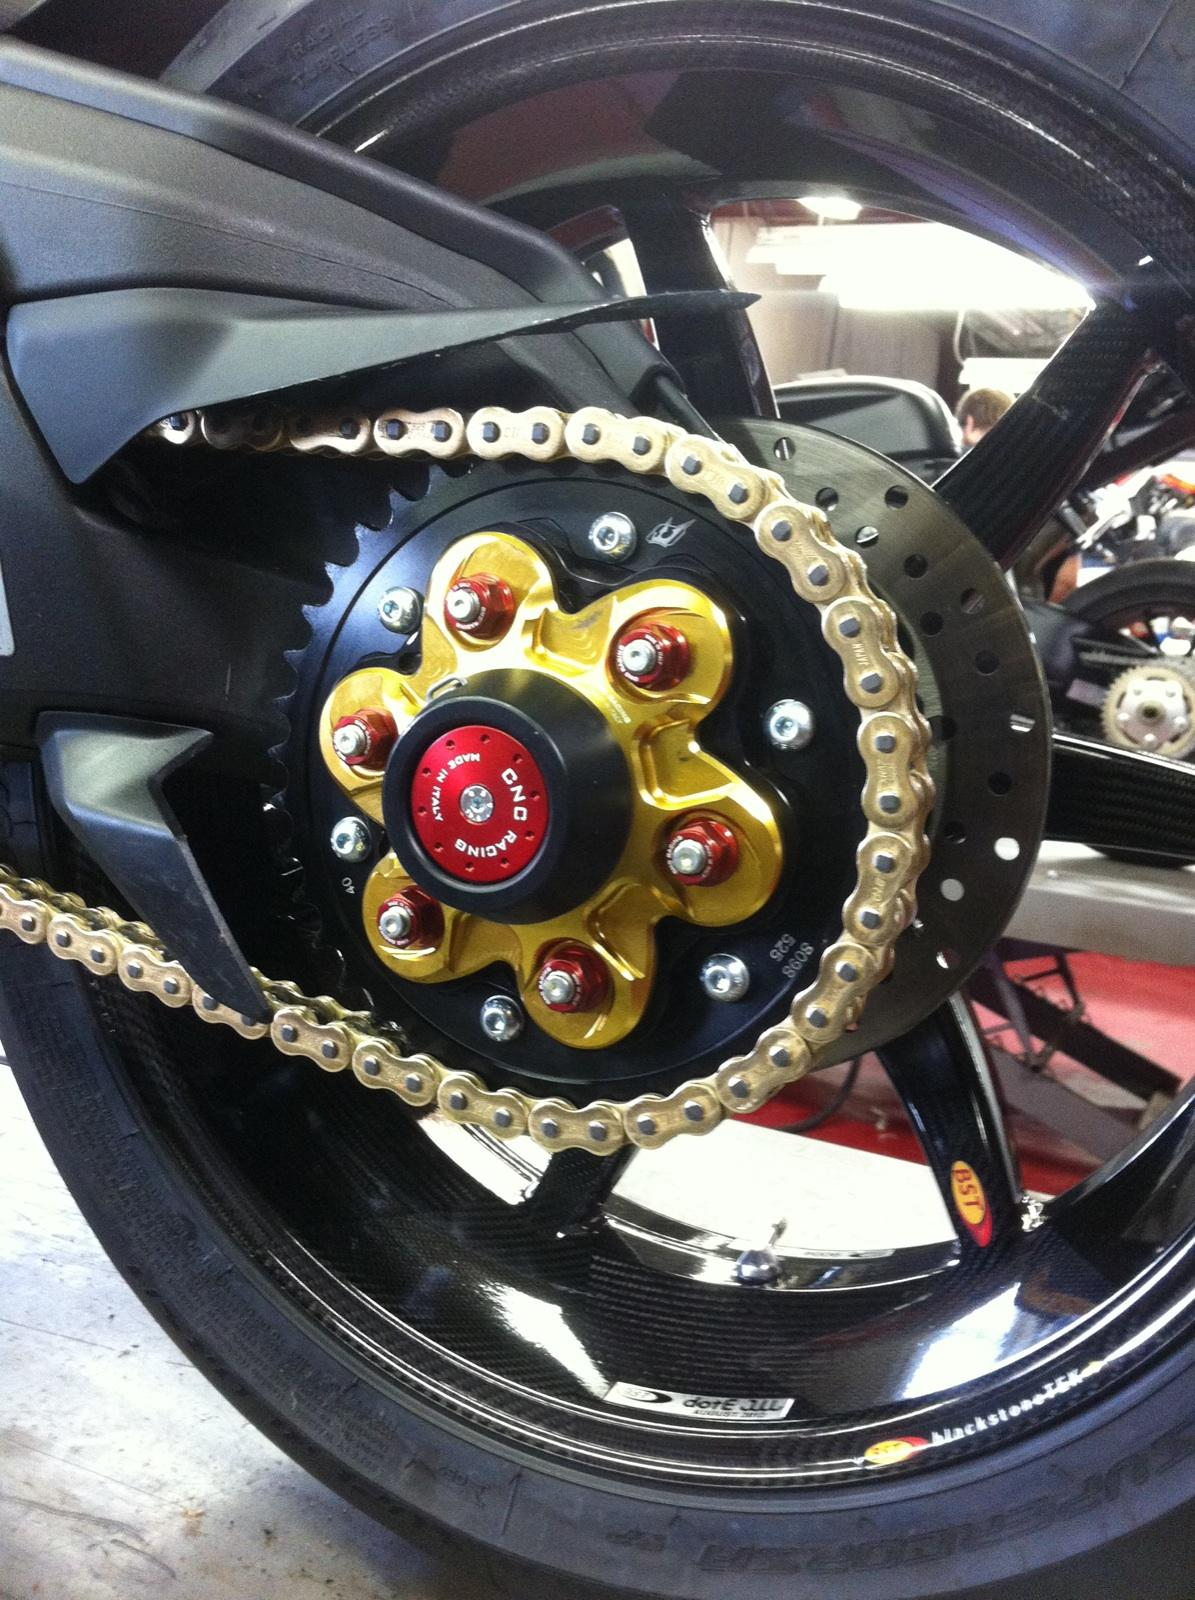 Afam Sprocket Carrier Vs Driven Ducati Org Forum The